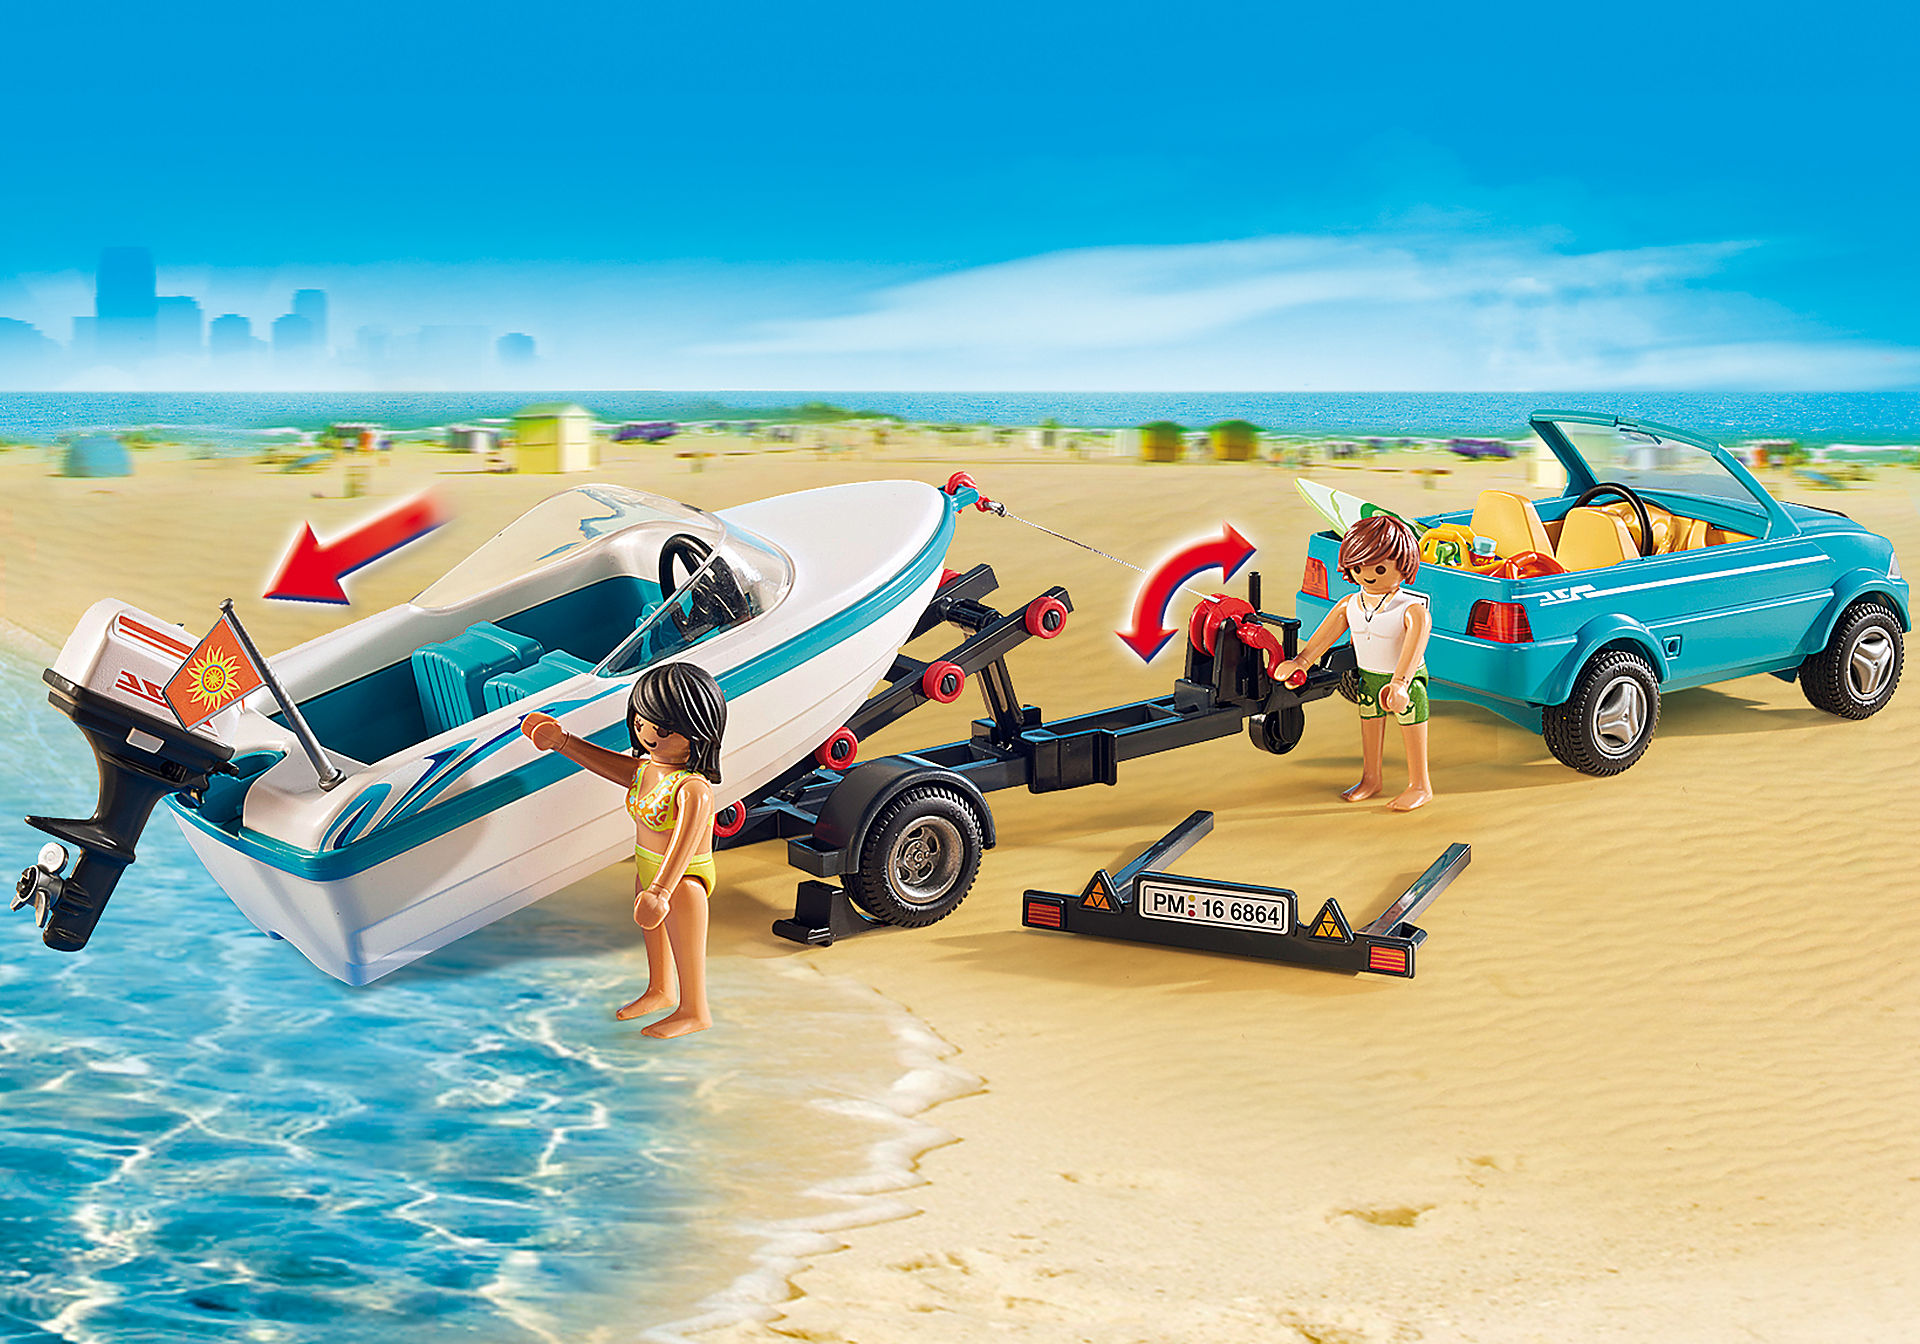 http://media.playmobil.com/i/playmobil/6864_product_extra2/Surfer Pickup with Speedboat